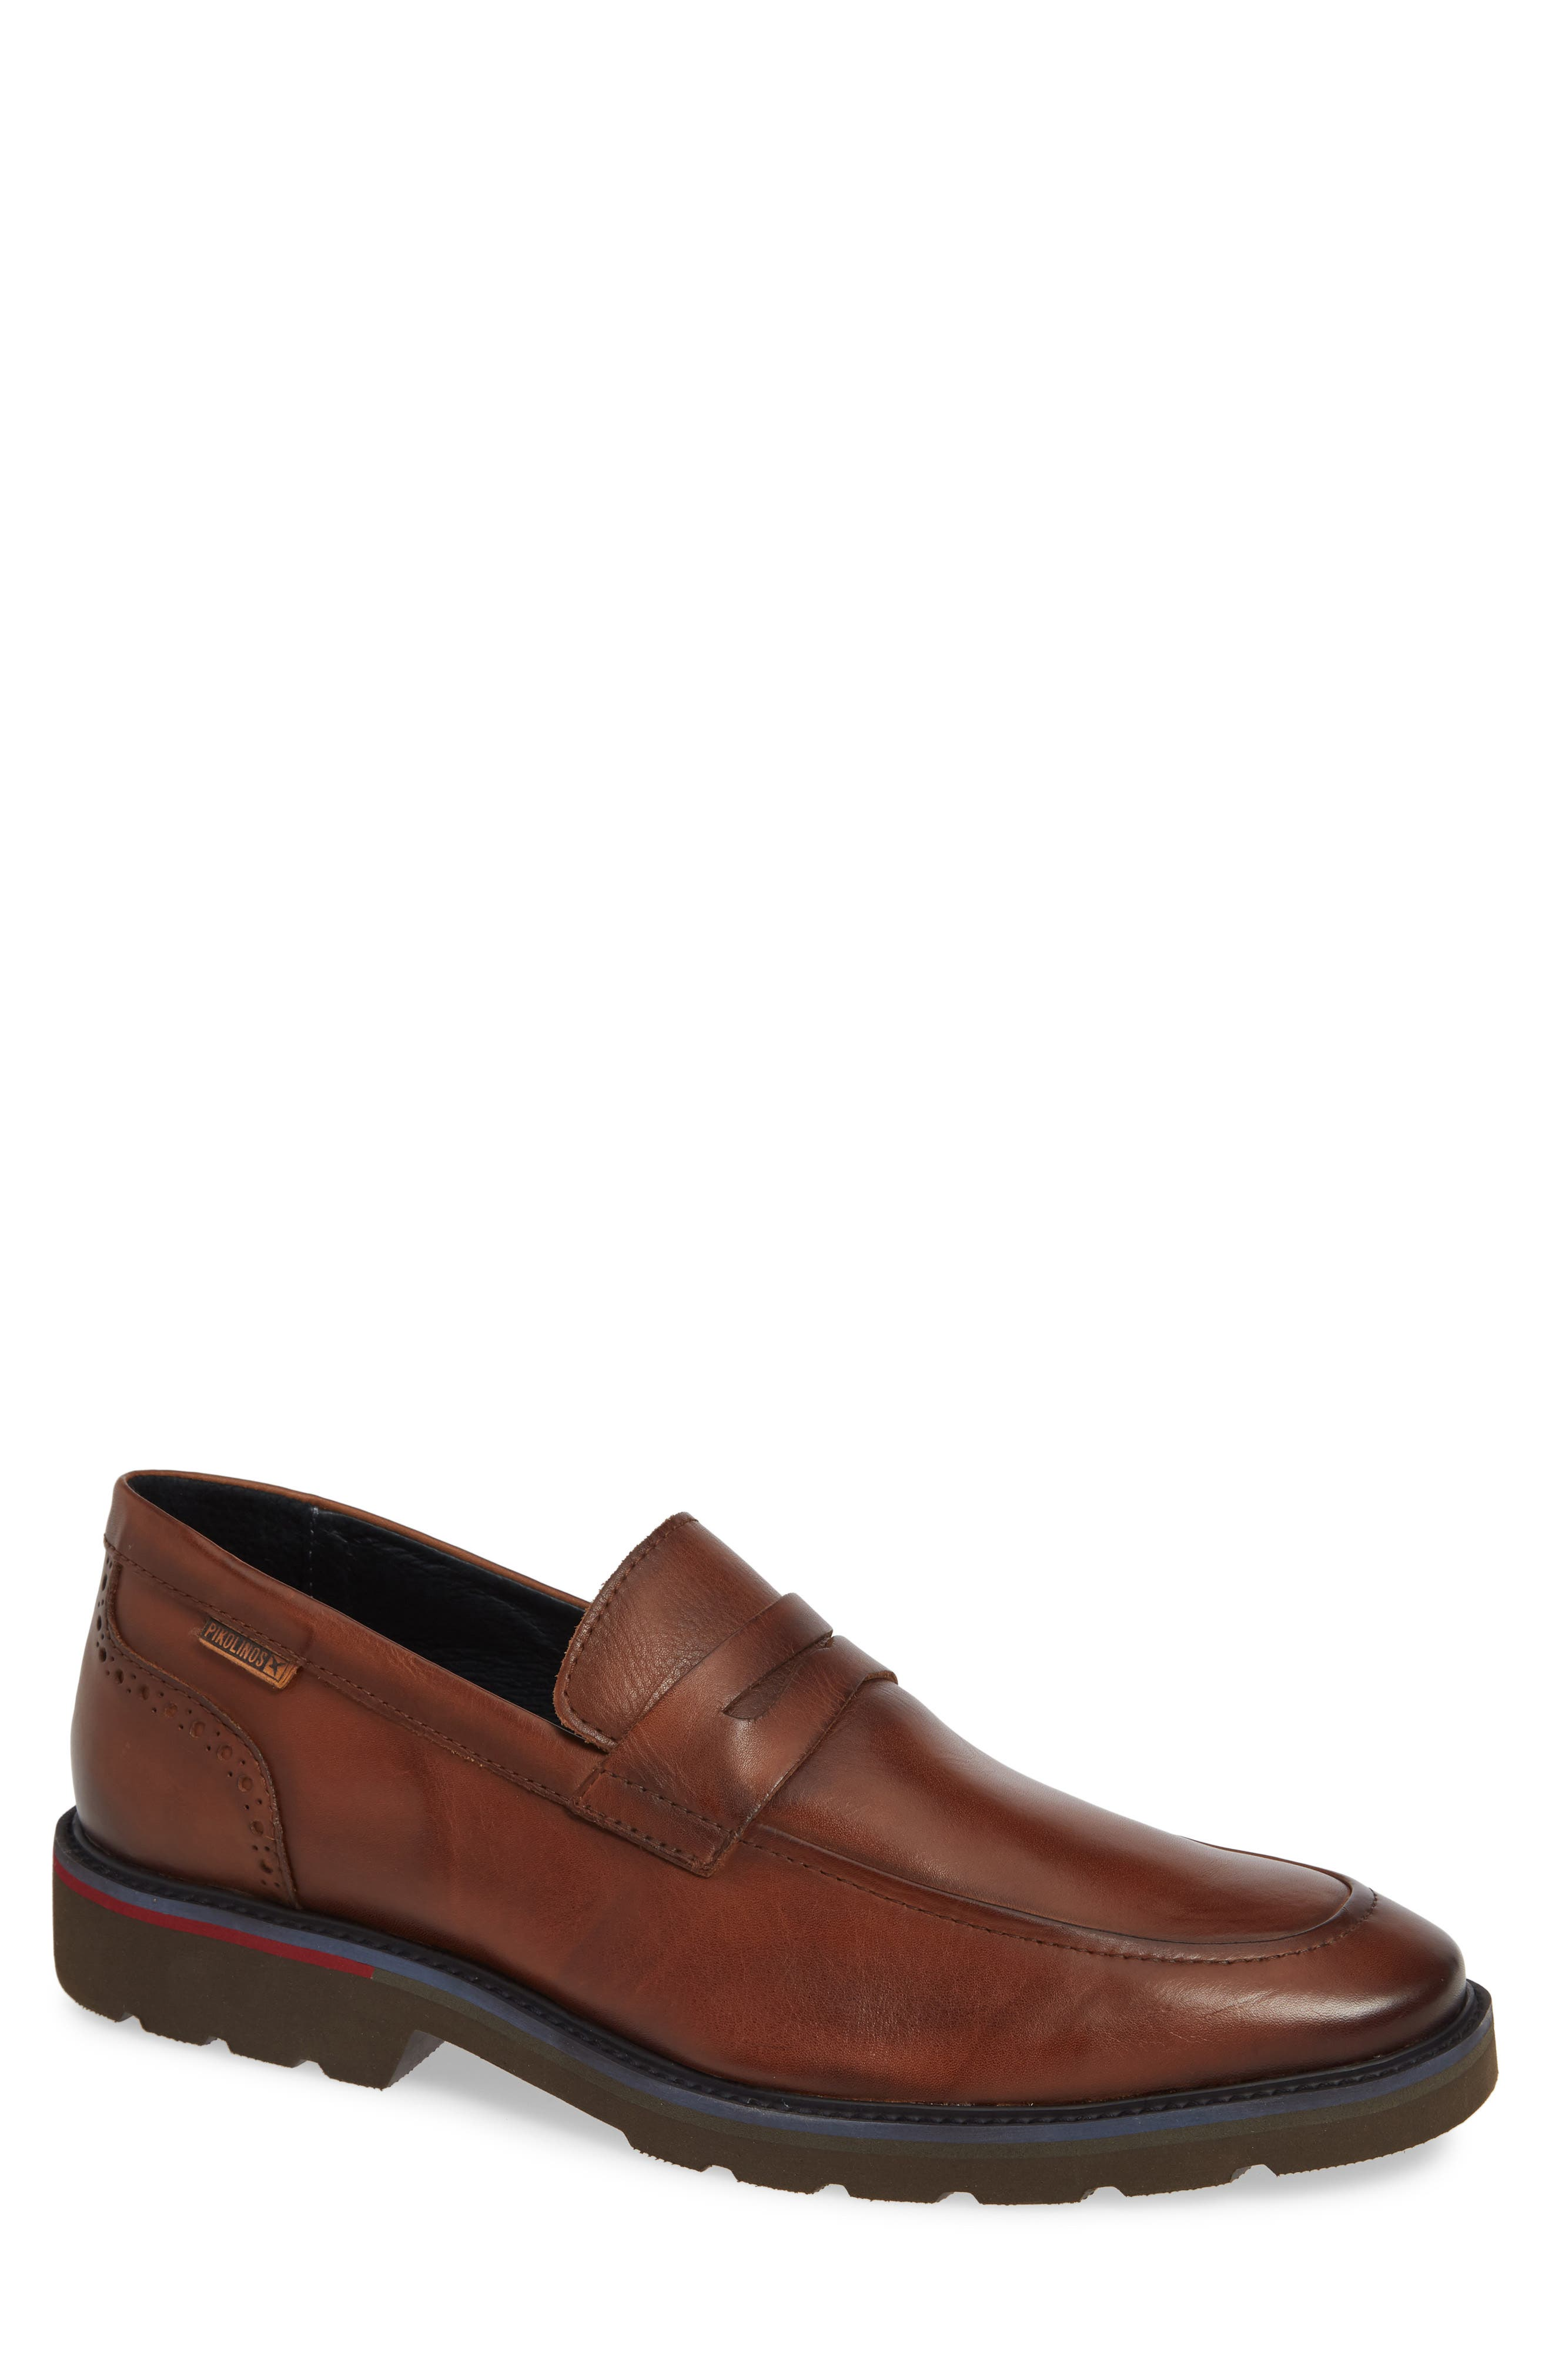 Salou Penny Loafer,                         Main,                         color, 203